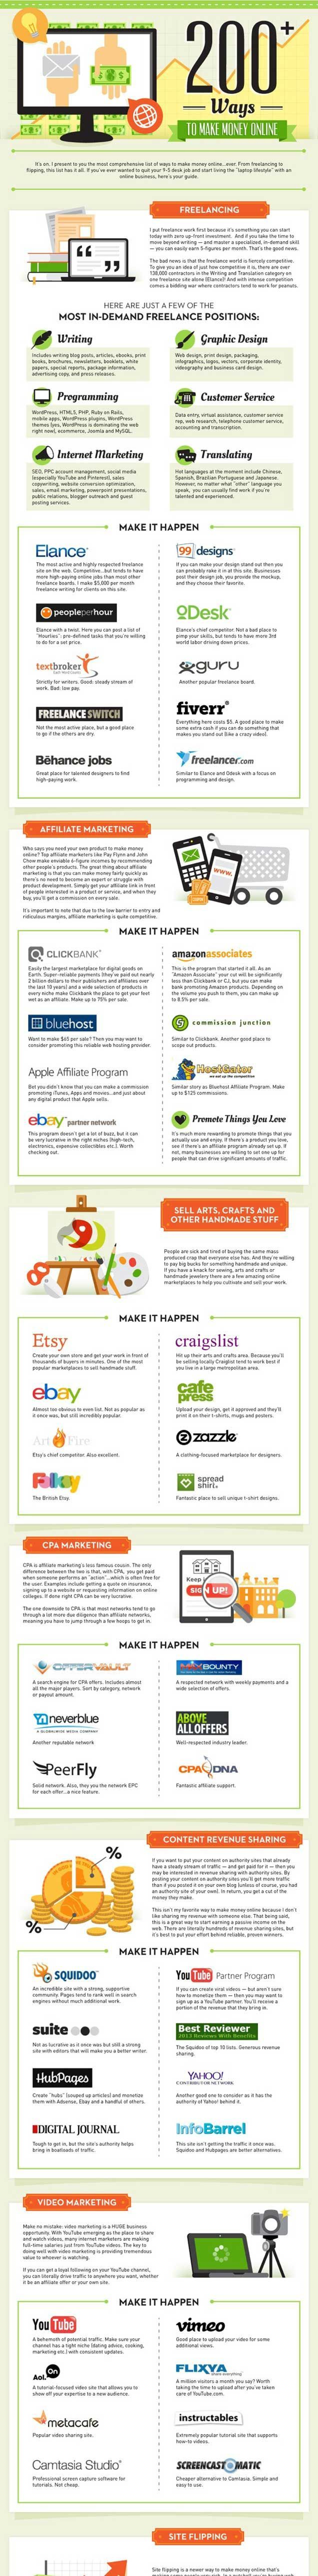 This Graphic Lists Over 200 Resources for Making Money Online Making Money money making ideas